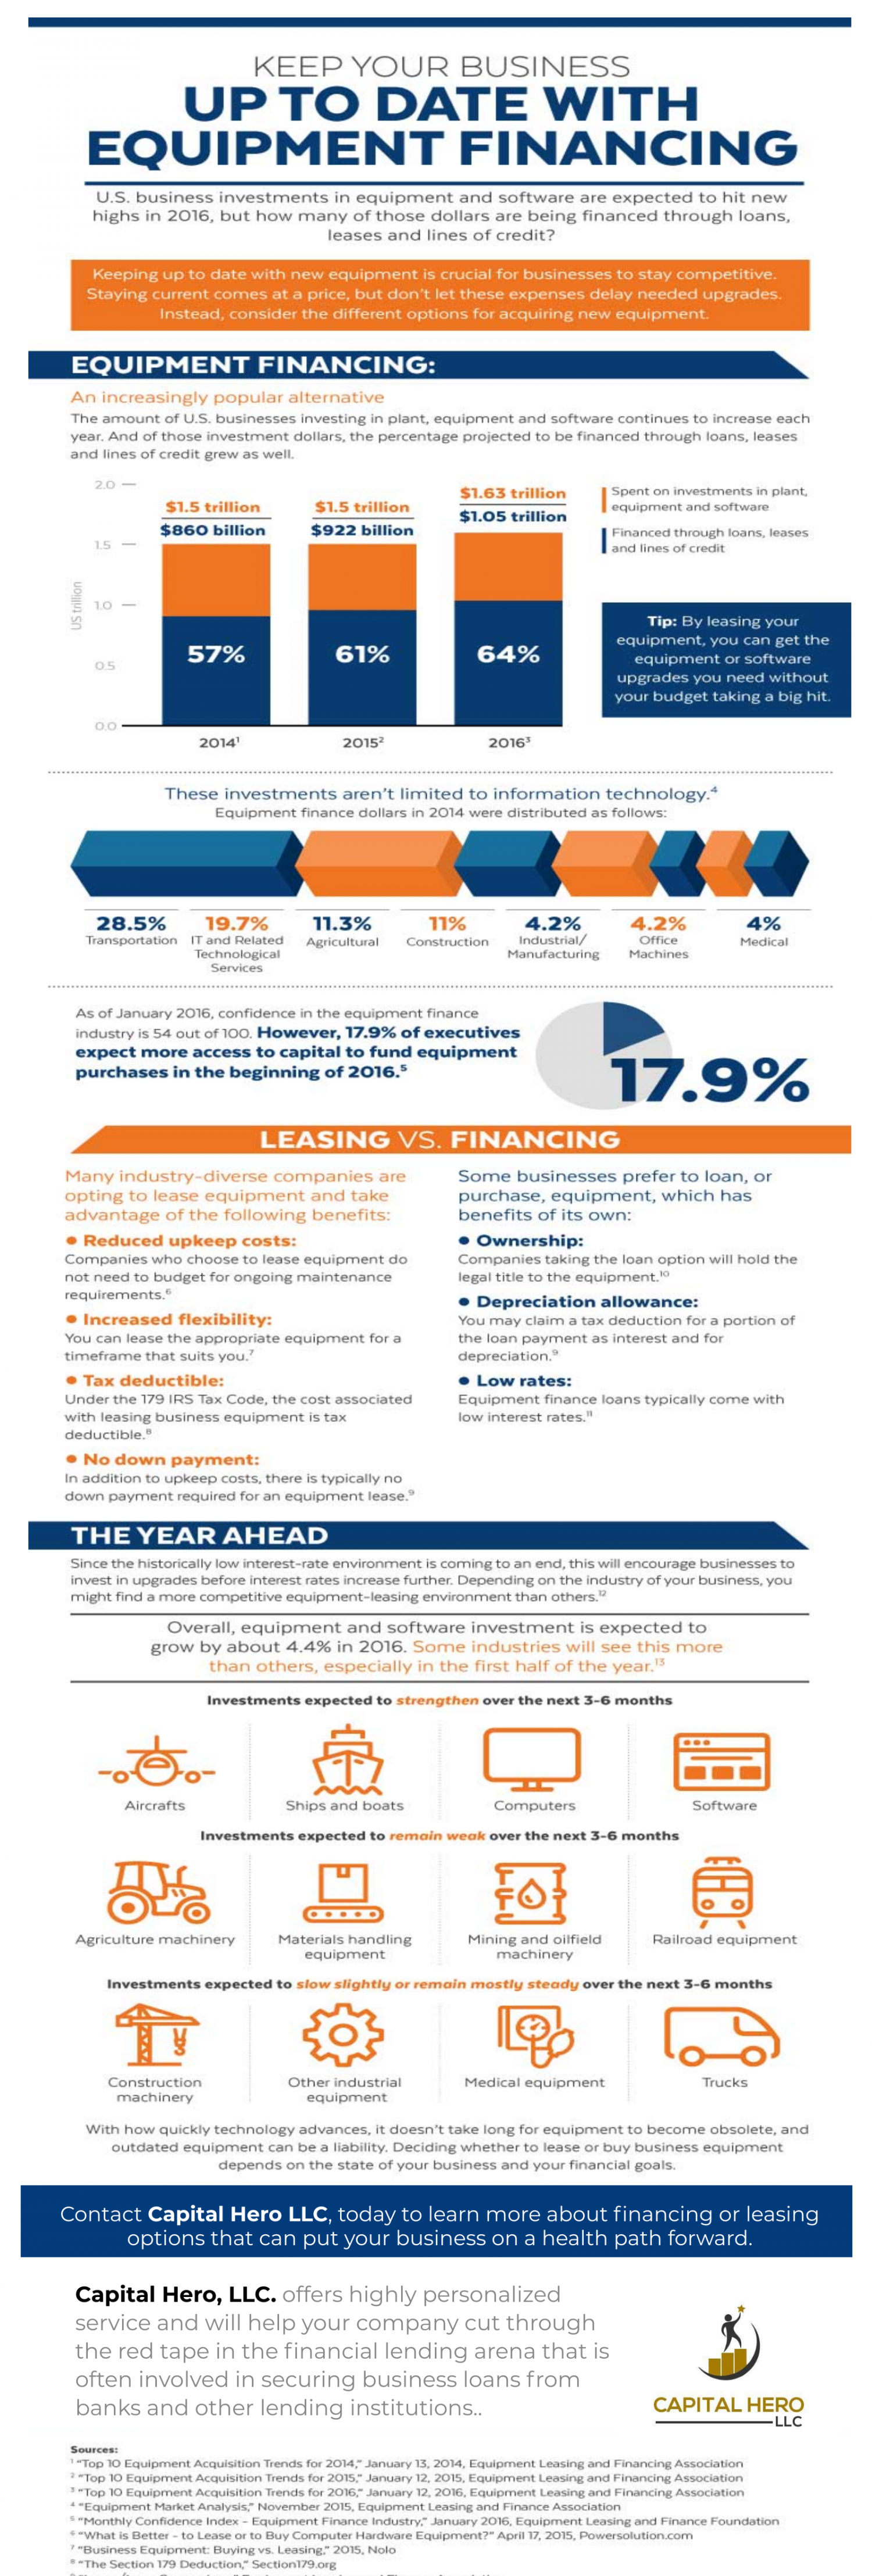 Keep your business update with `best equipment financing options Infographic